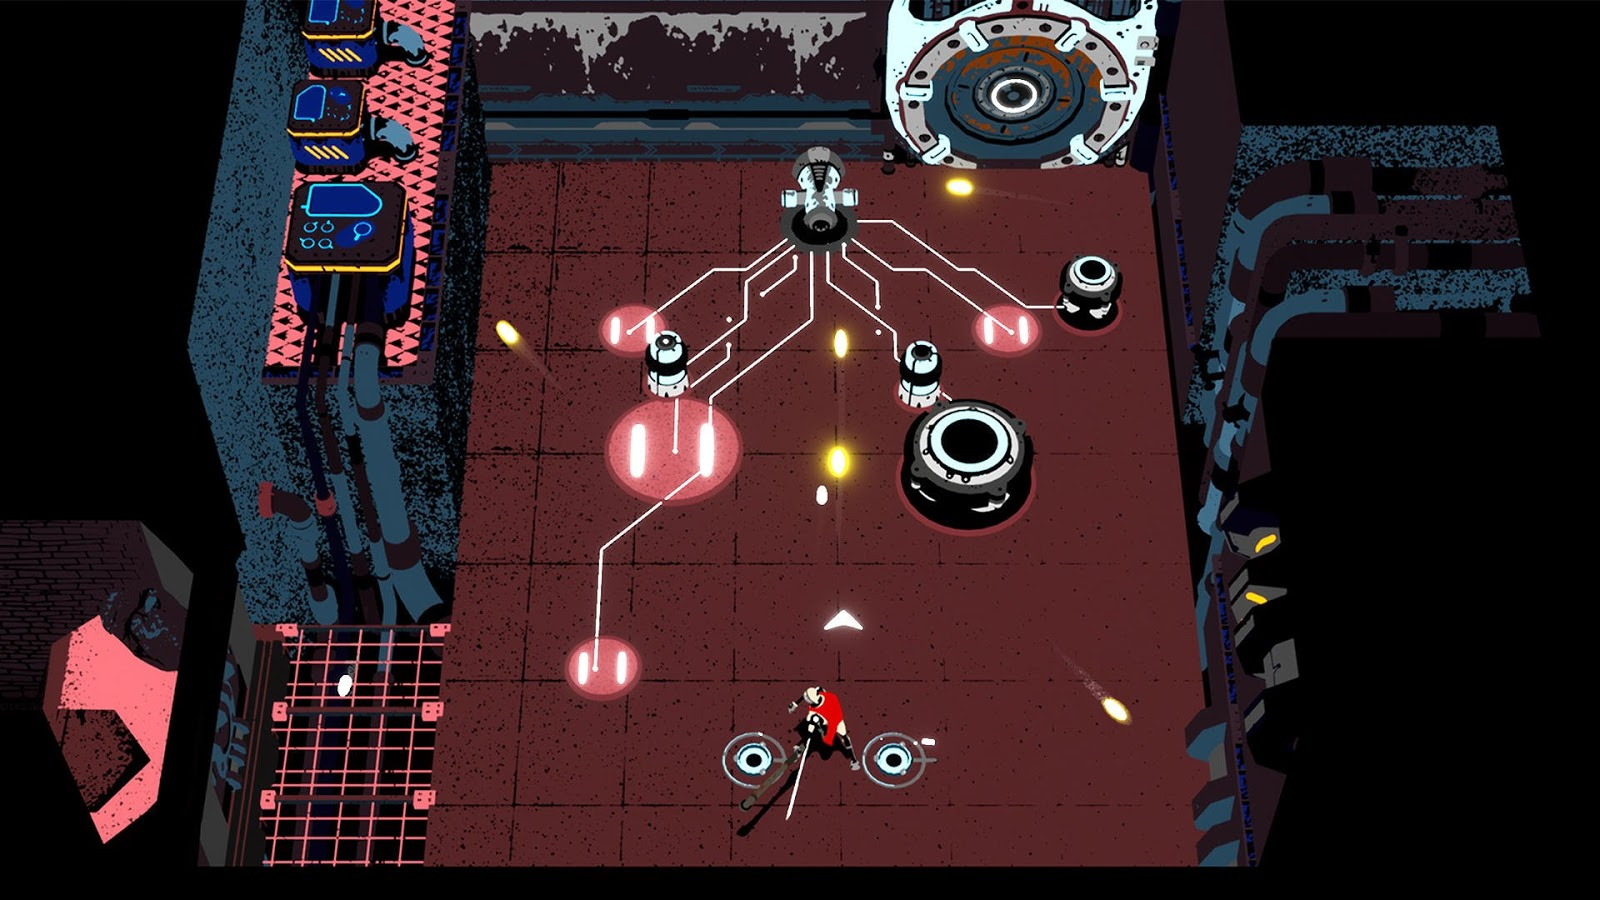 Mini Review: Creature in the Well - A Unique, Stylish Spin on Arcade Action